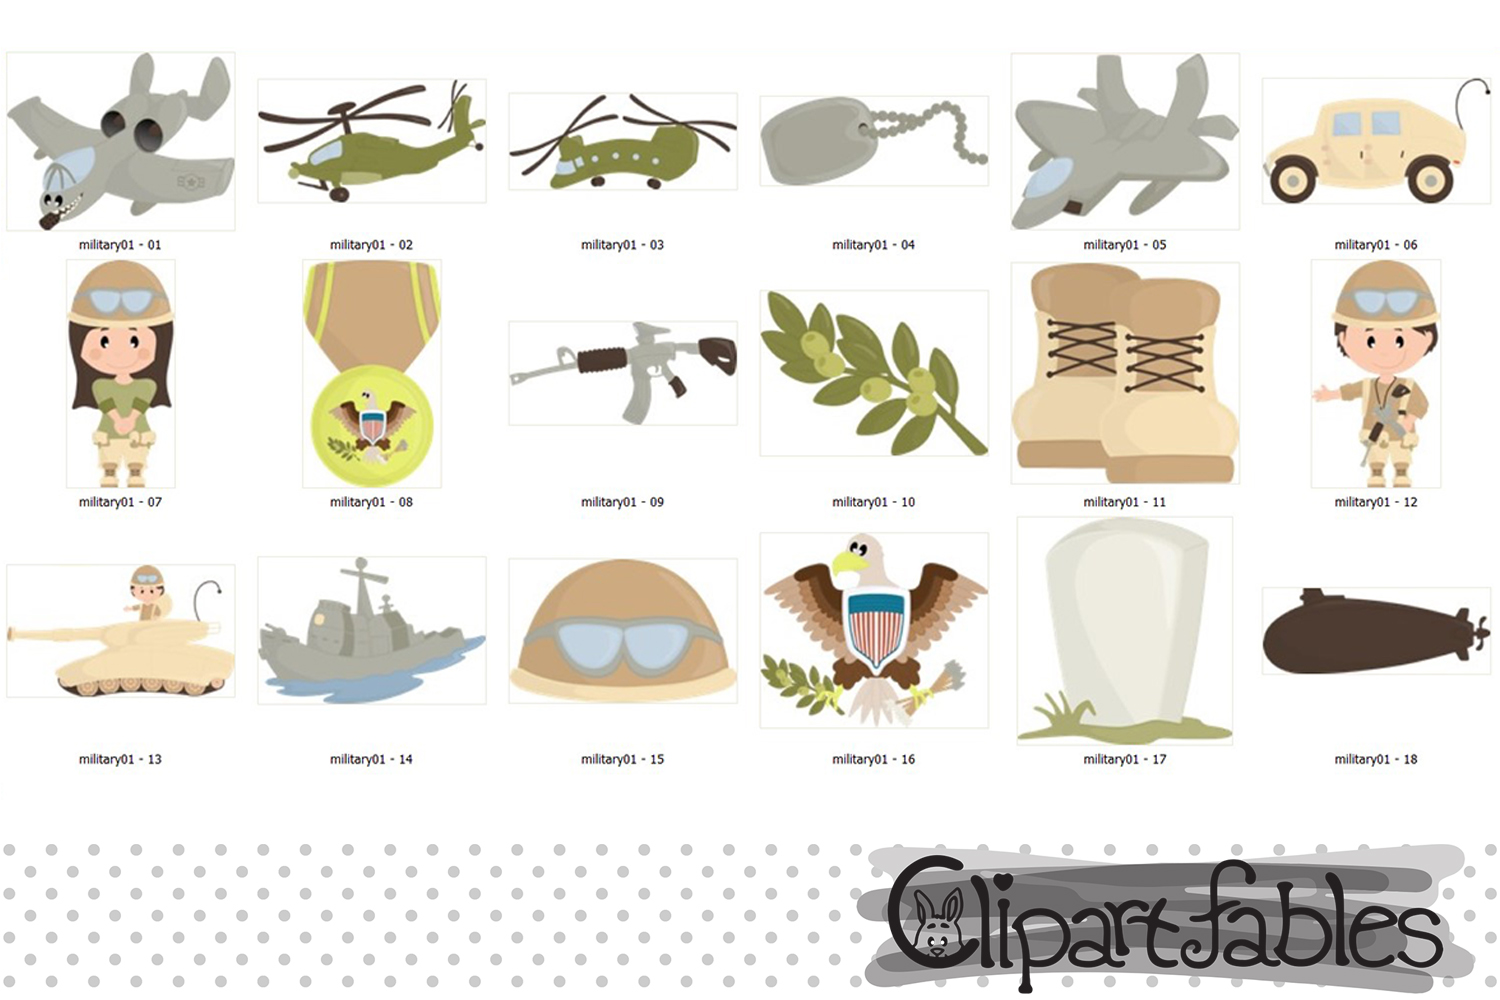 Memorial day, Military clipart, Cute army clip art, USA army example image 2